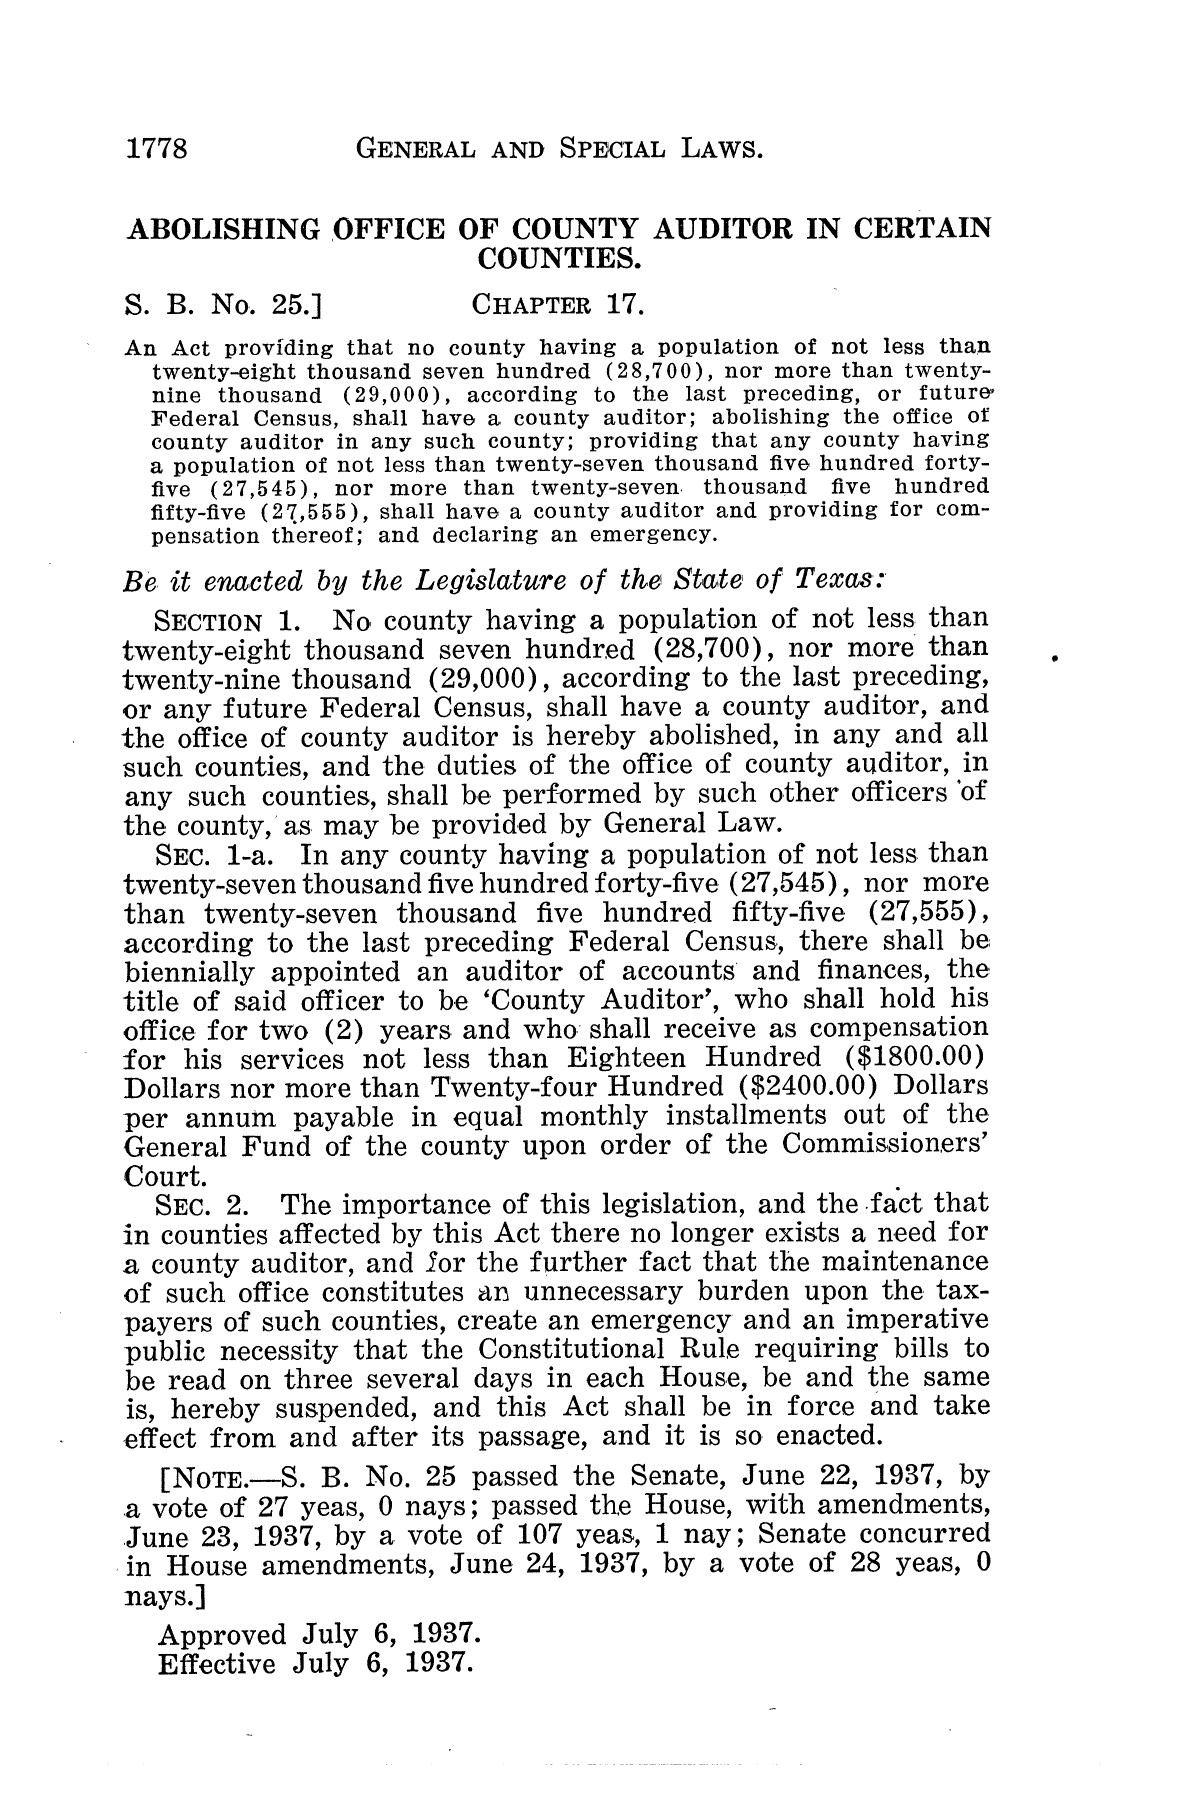 The Laws of Texas, 1937-1939 [Volume 31]                                                                                                      [Sequence #]: 50 of 1313